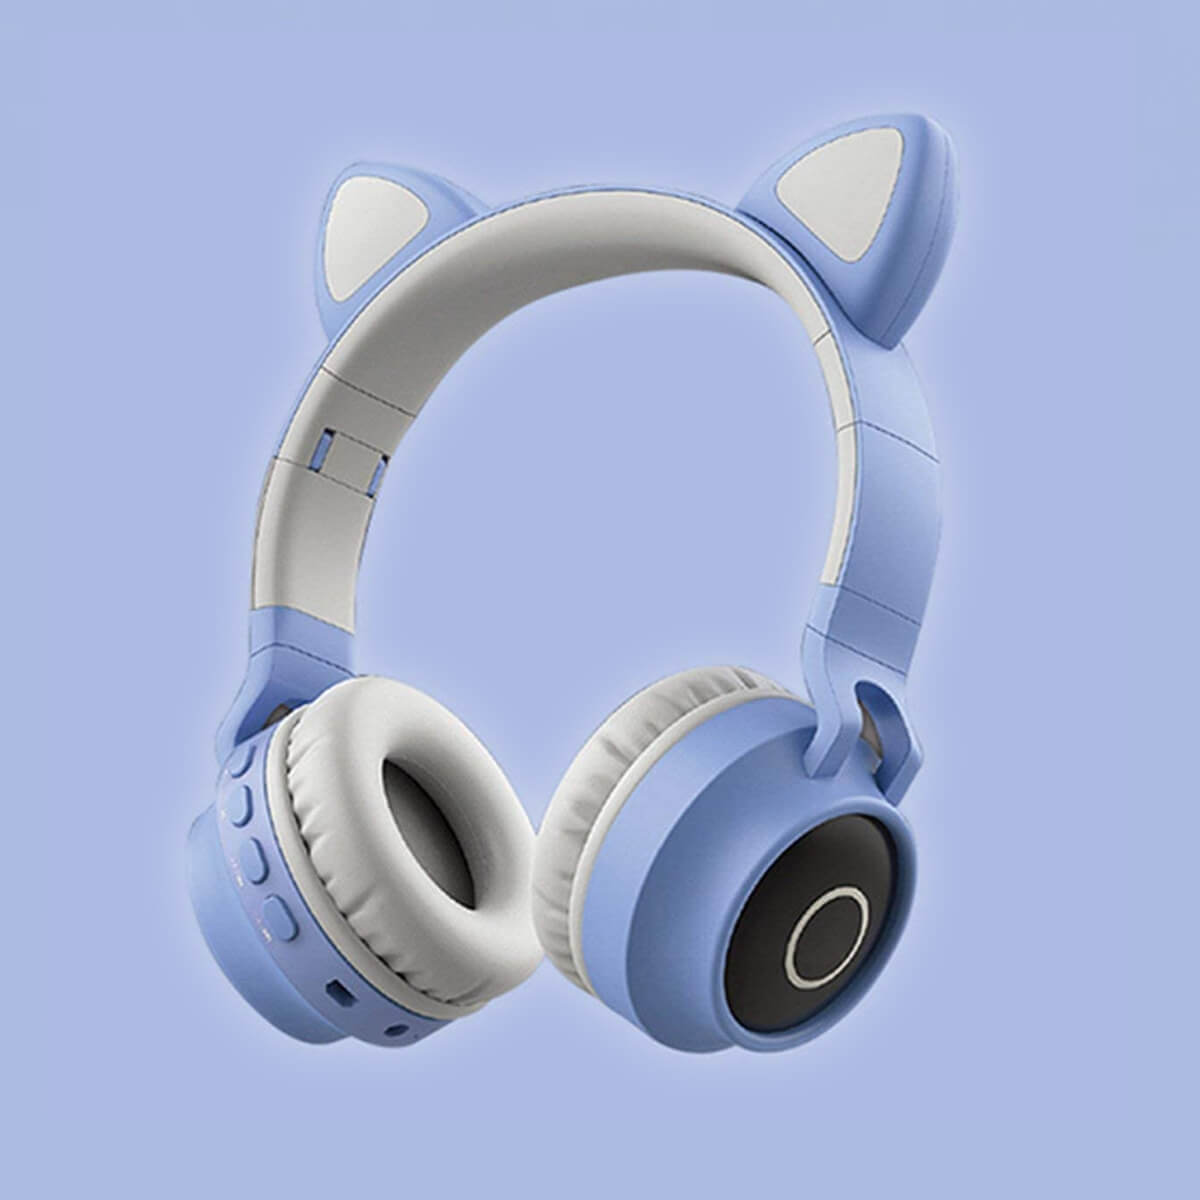 Cat Headphones Kitty Tunes, cute wireless headphone with cat ears - product image sky blue earphones